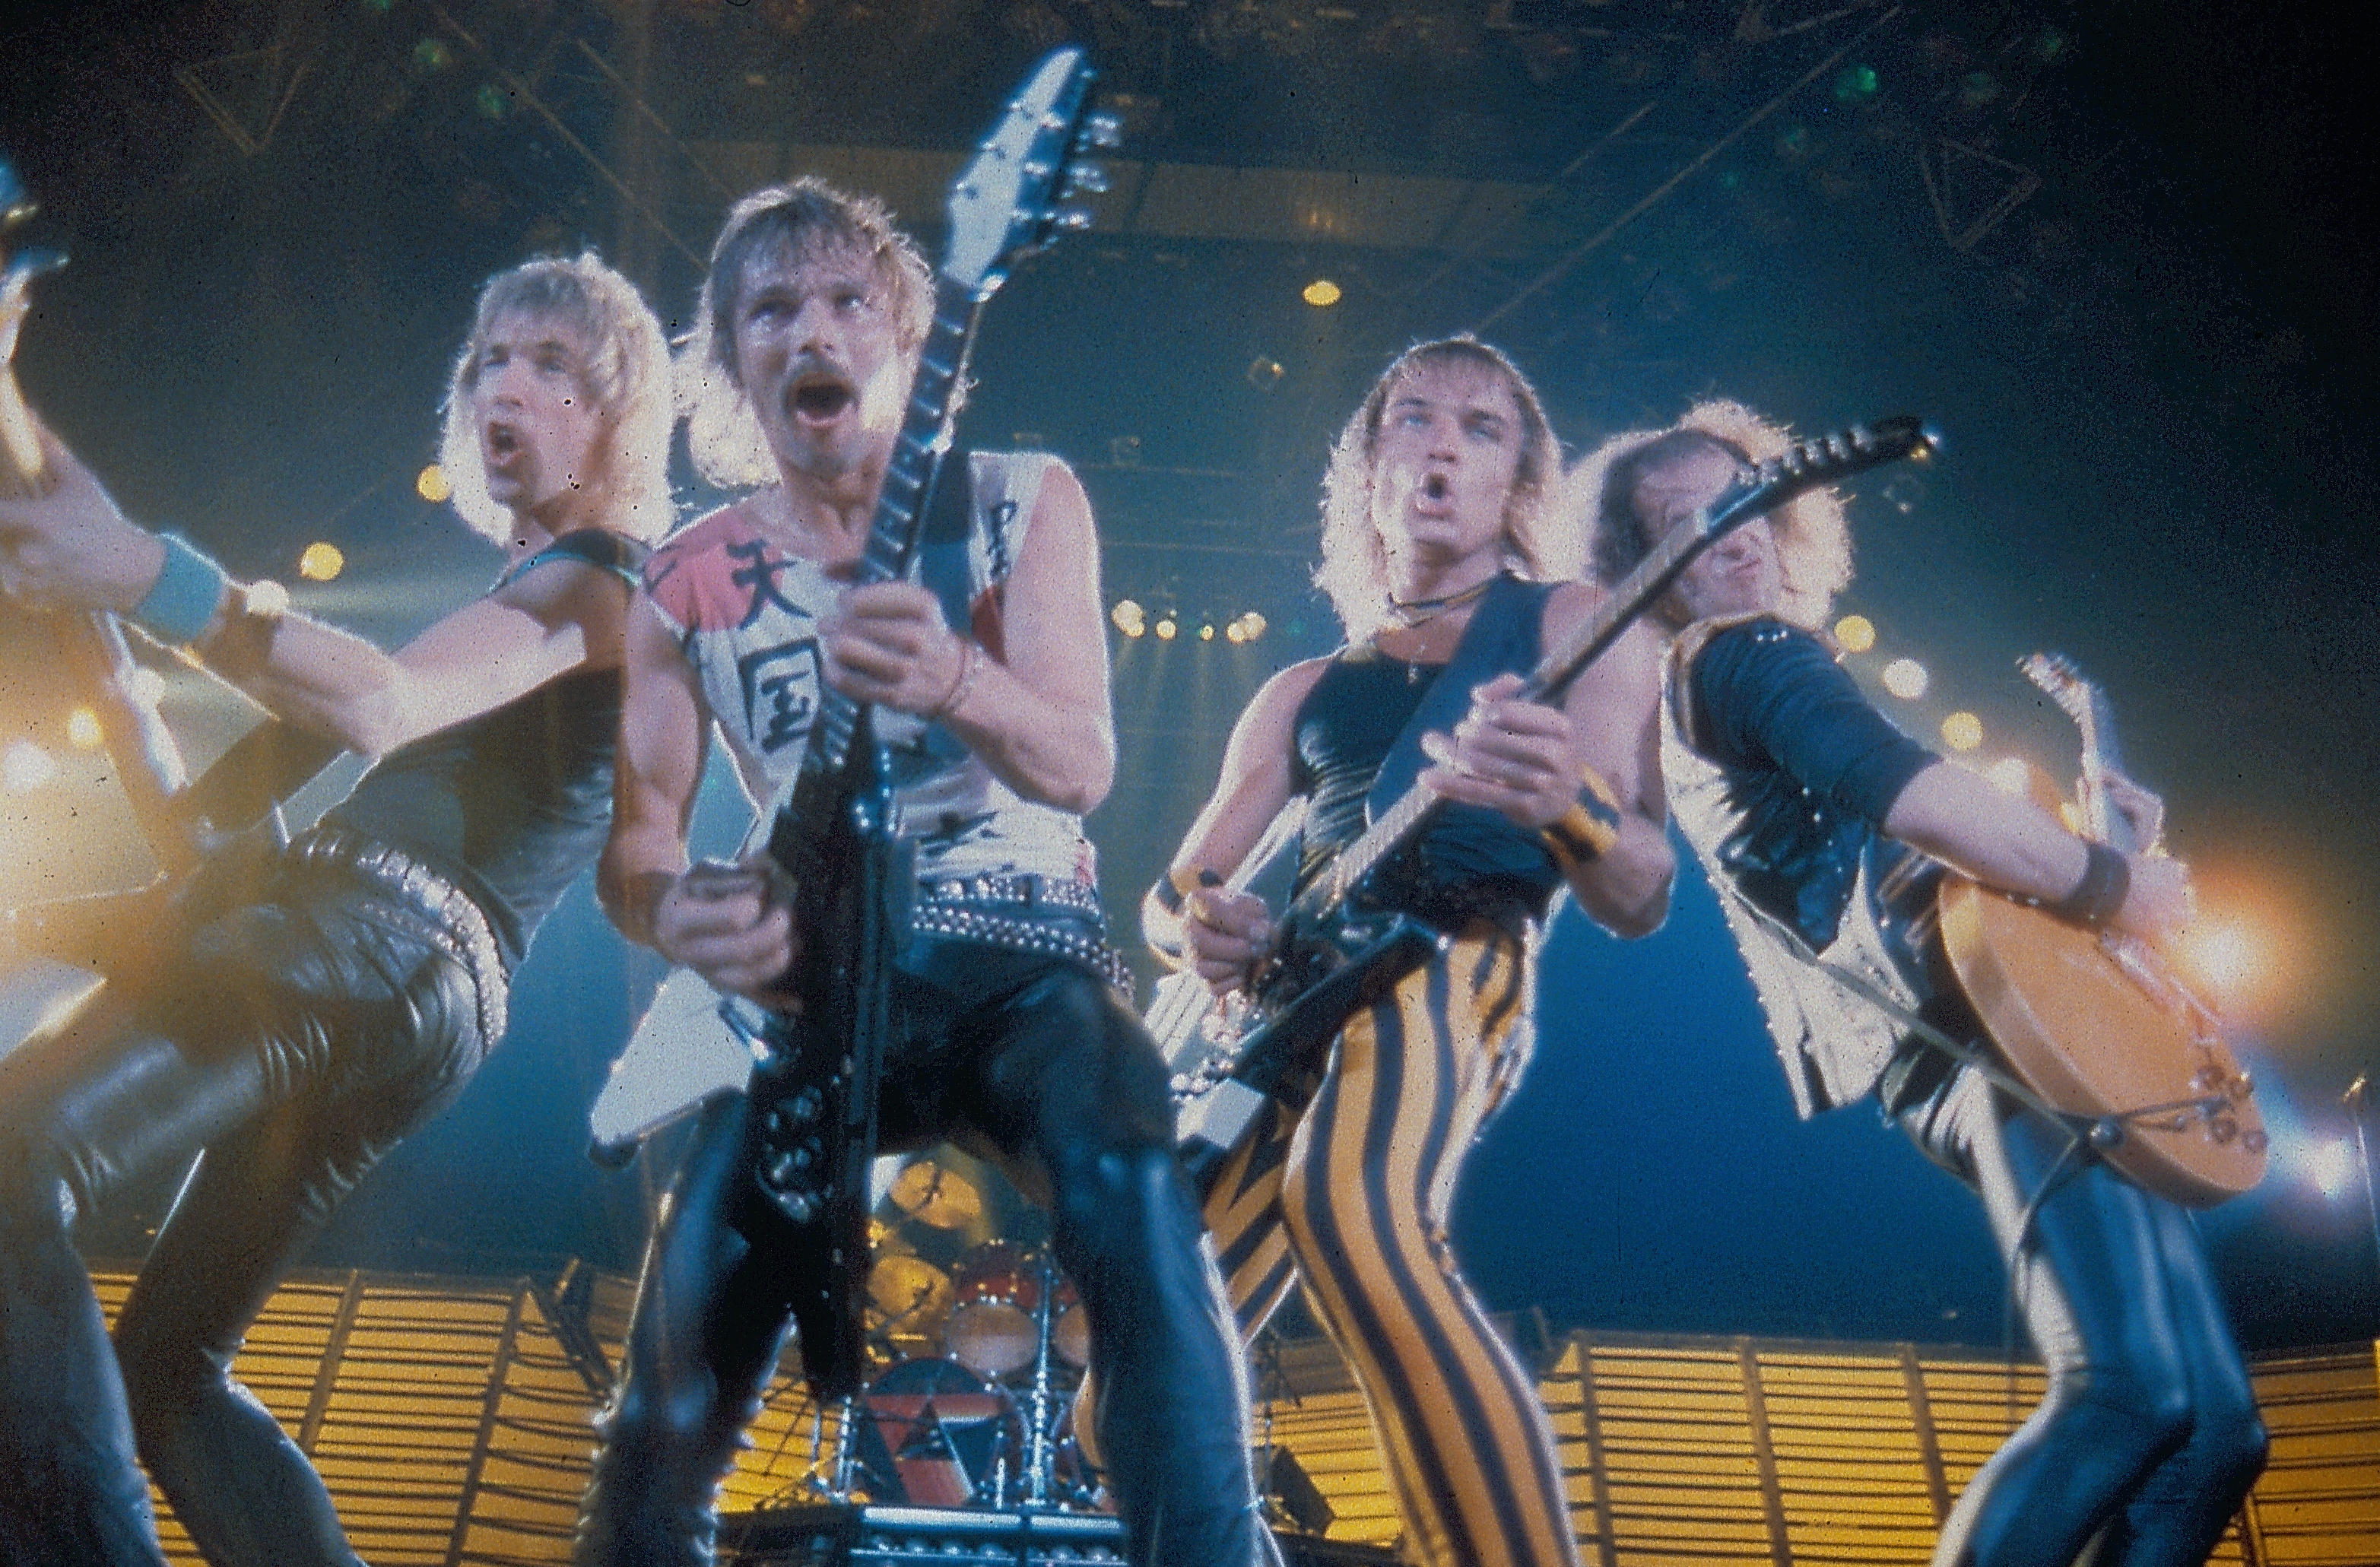 Scorpions' 'Wind of Change': The Oral History of 1990's Epic Power Ballad